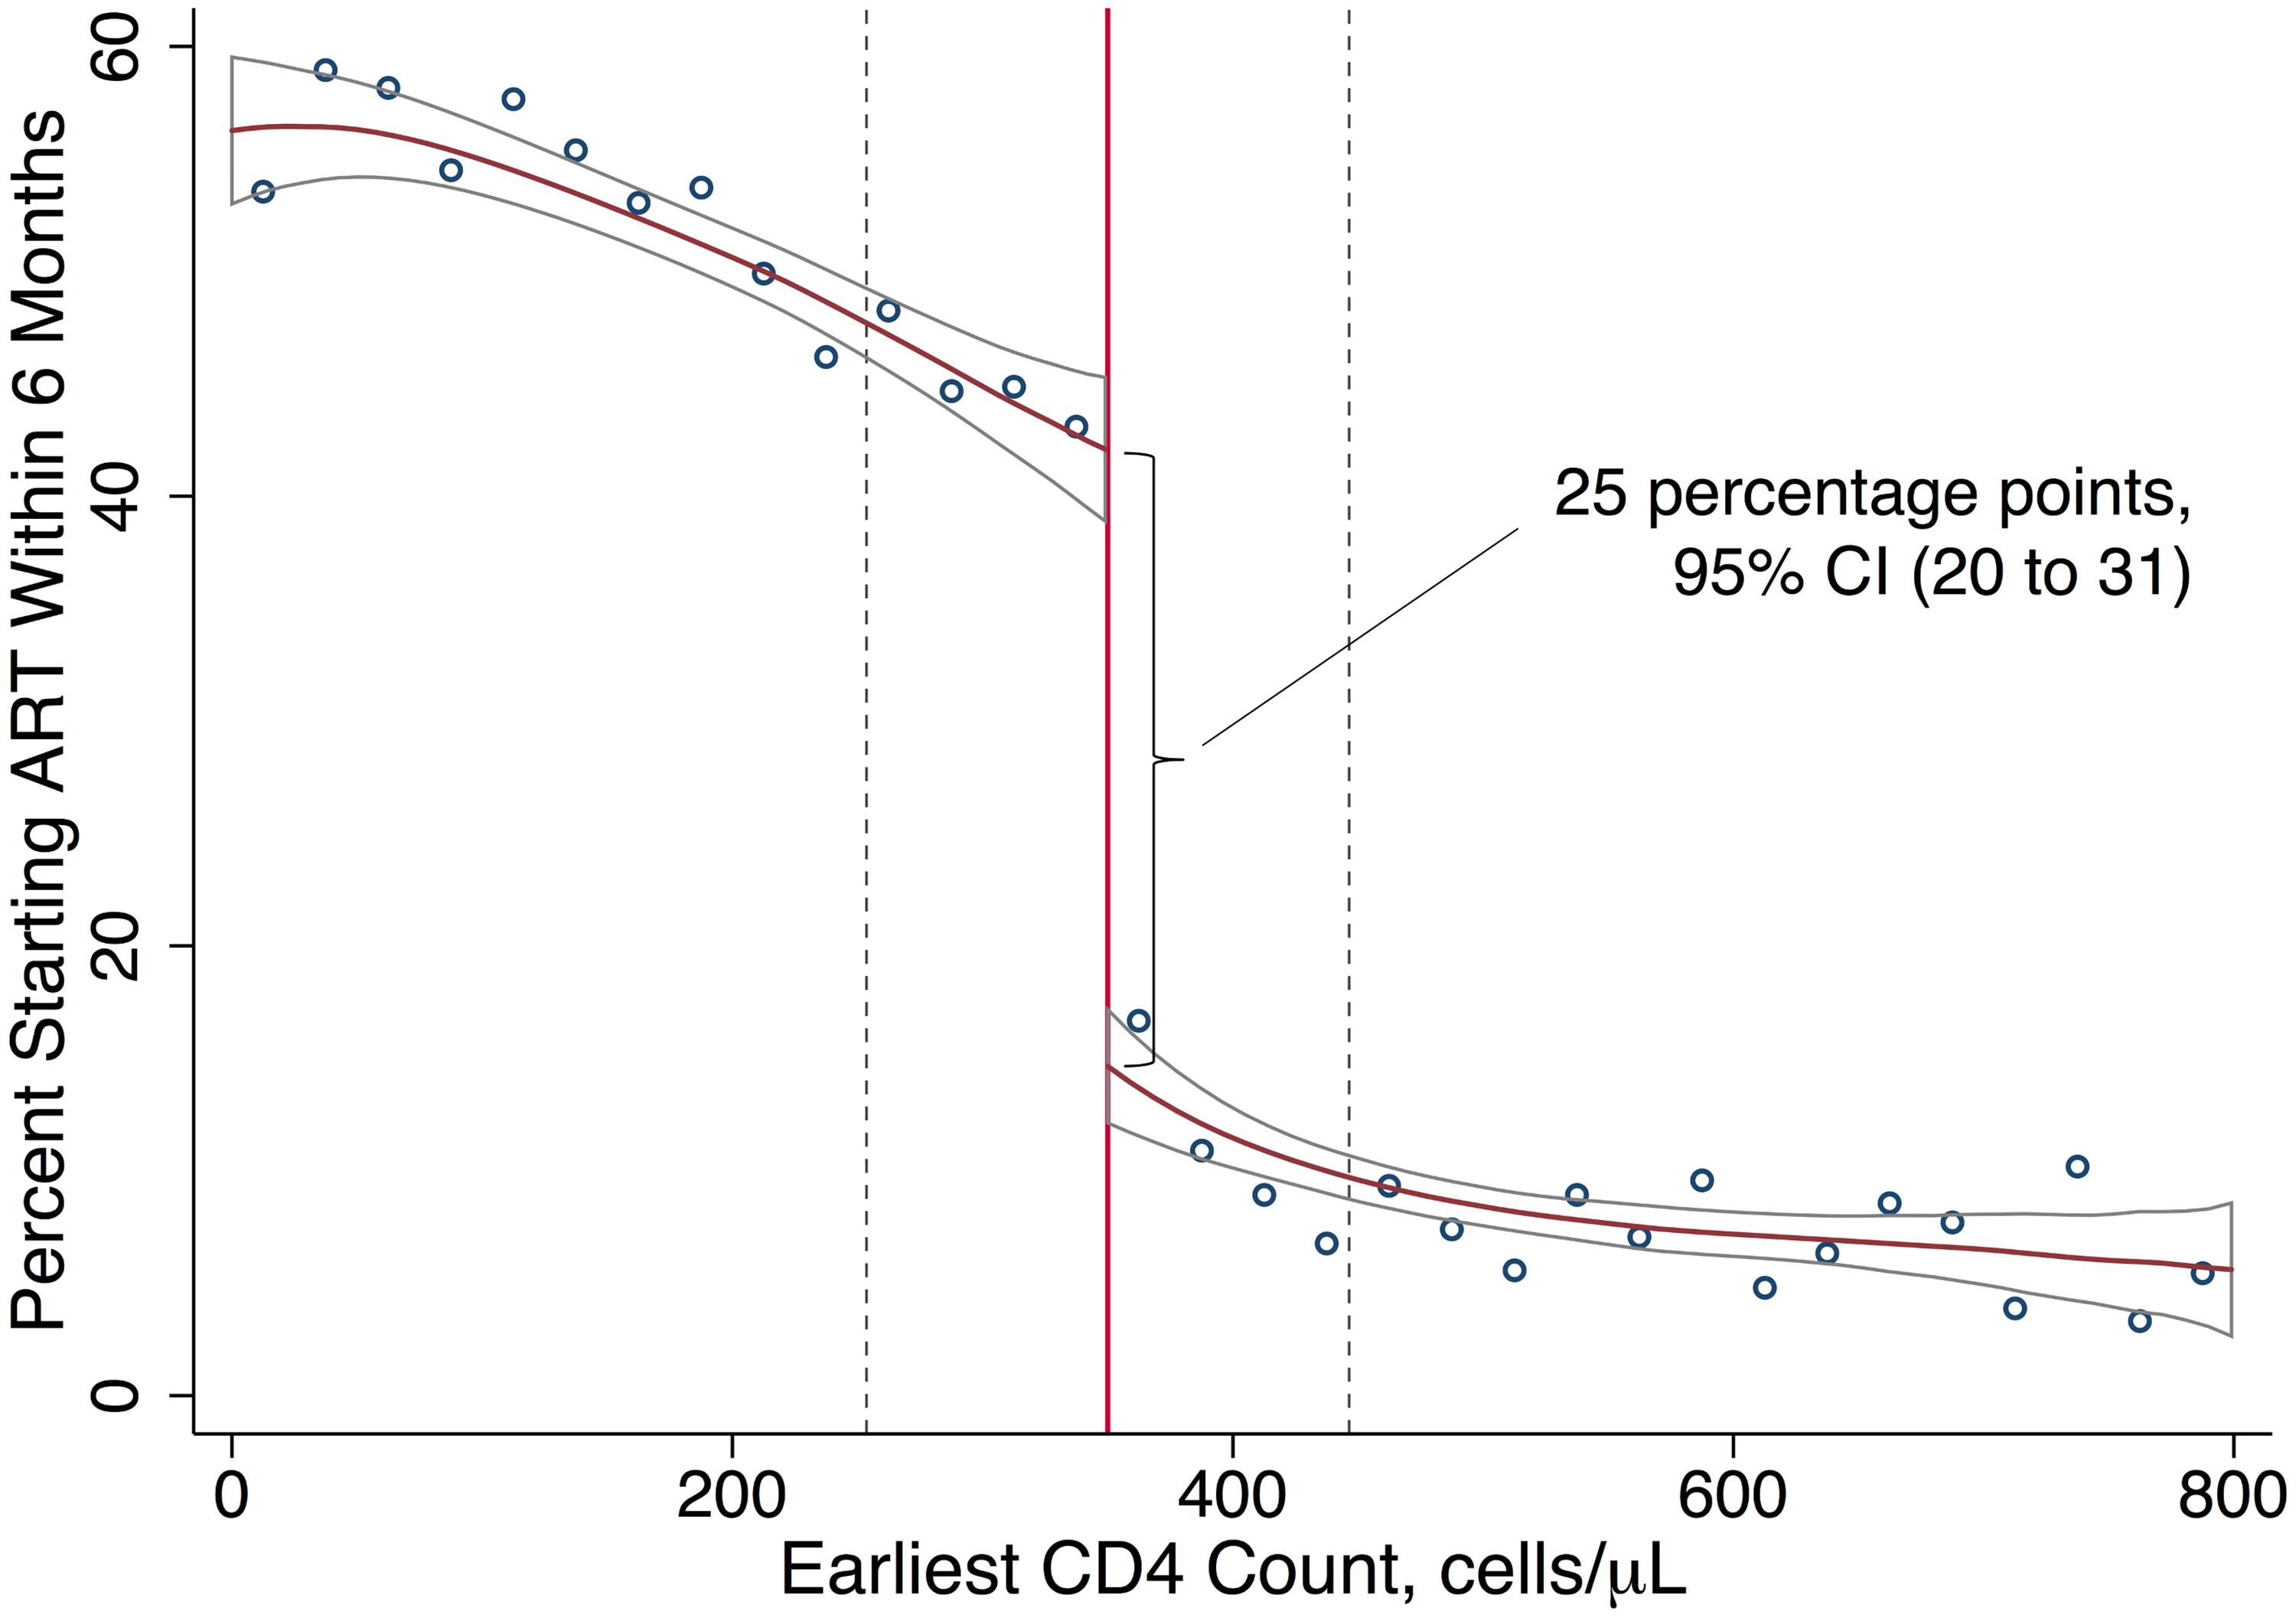 ART uptake increases with an eligible CD4 count.